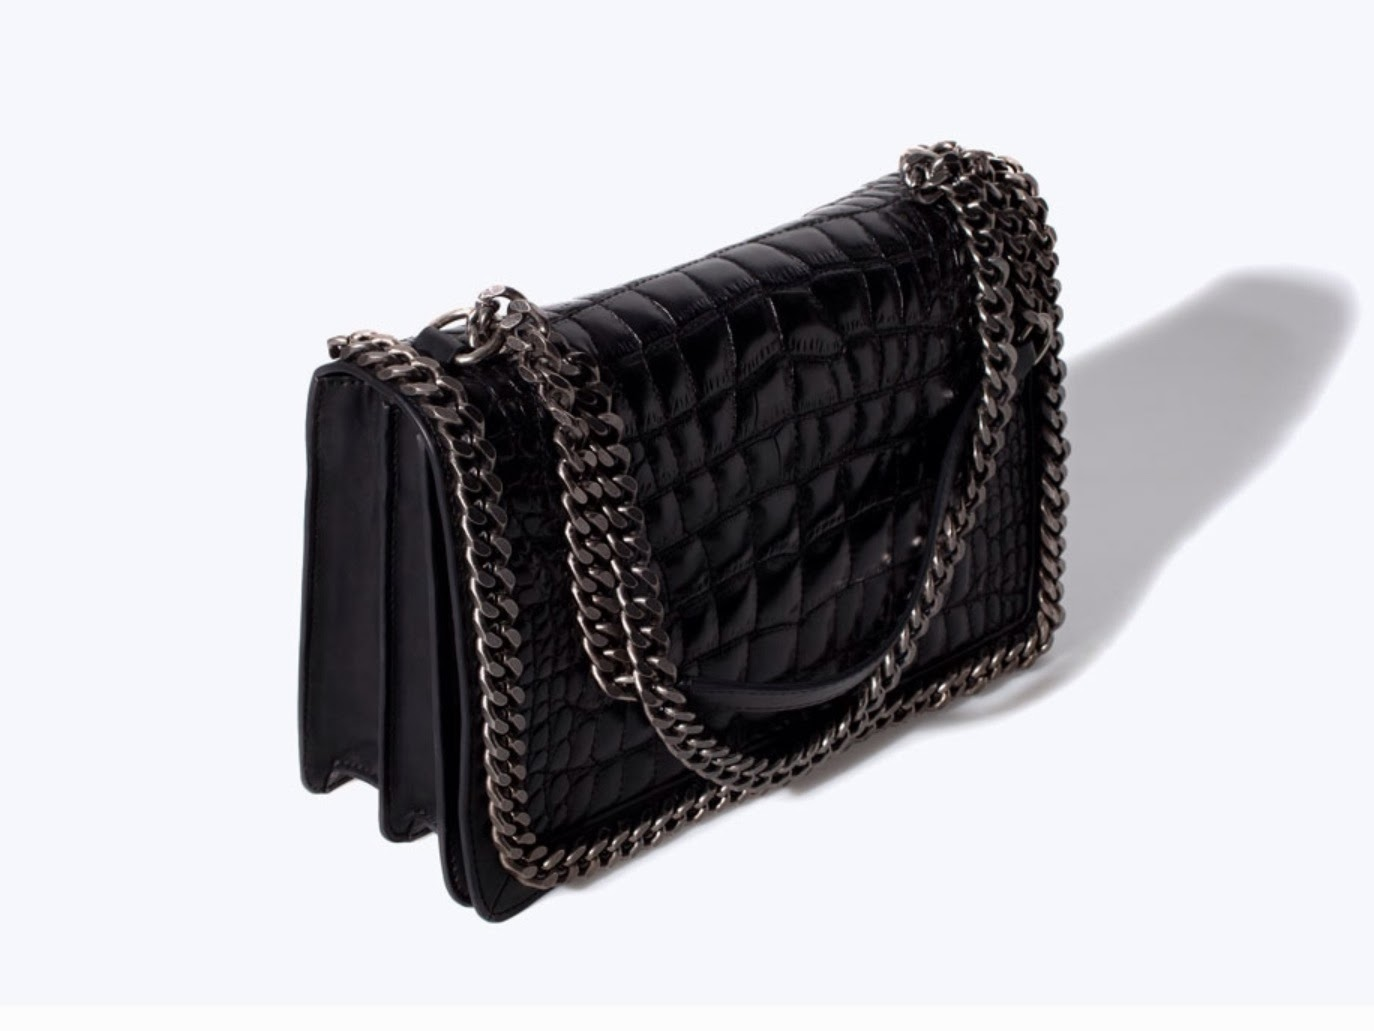 This Zara Bag Is Made From A Crocodile Pattern Leather Always Great Quality And The Chain Detailing Handle Again Have That